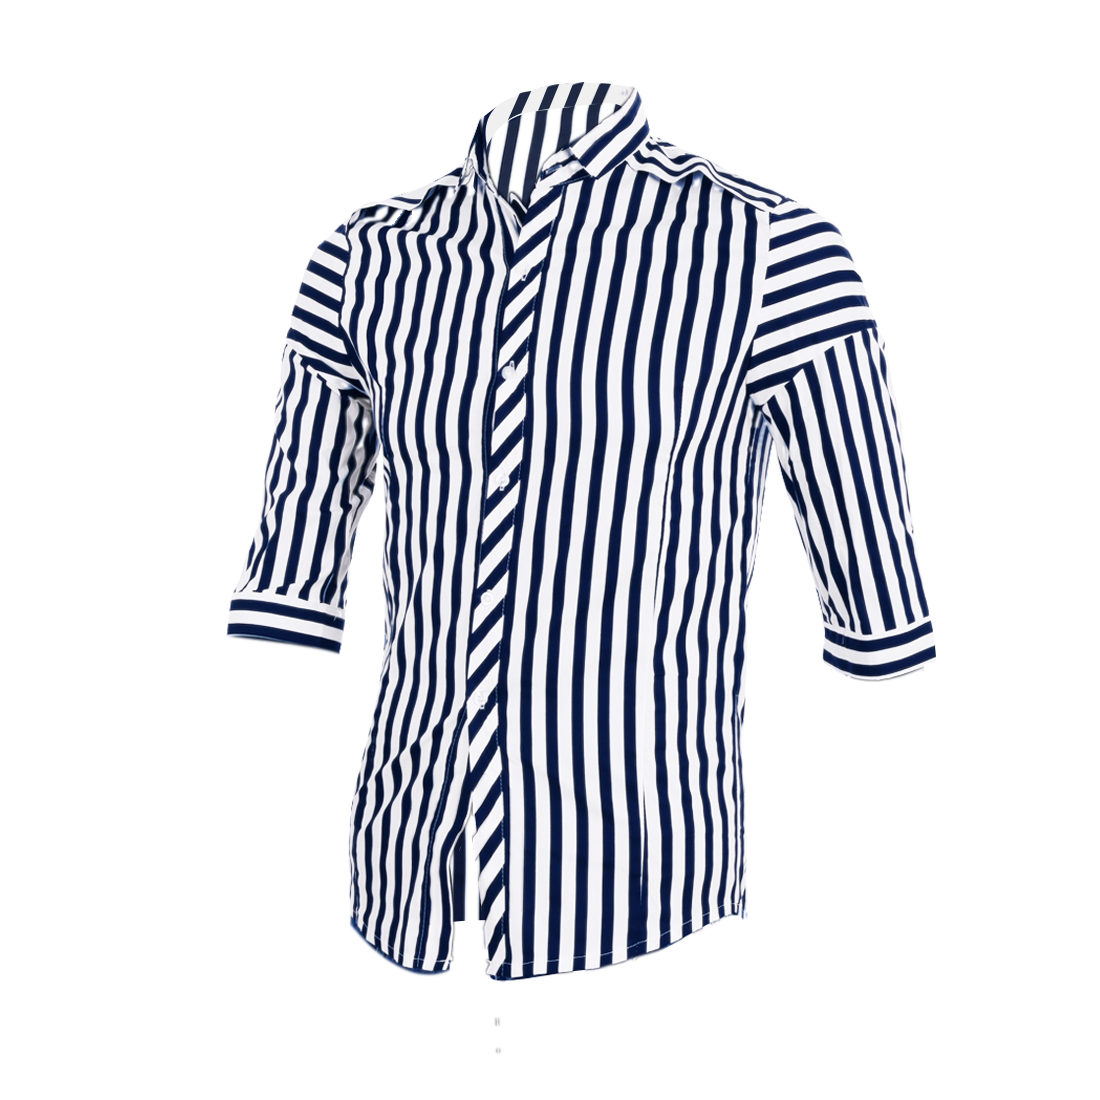 Men Point Collar Buttoned Cuffs Stripes Shirt Navy Blue White S